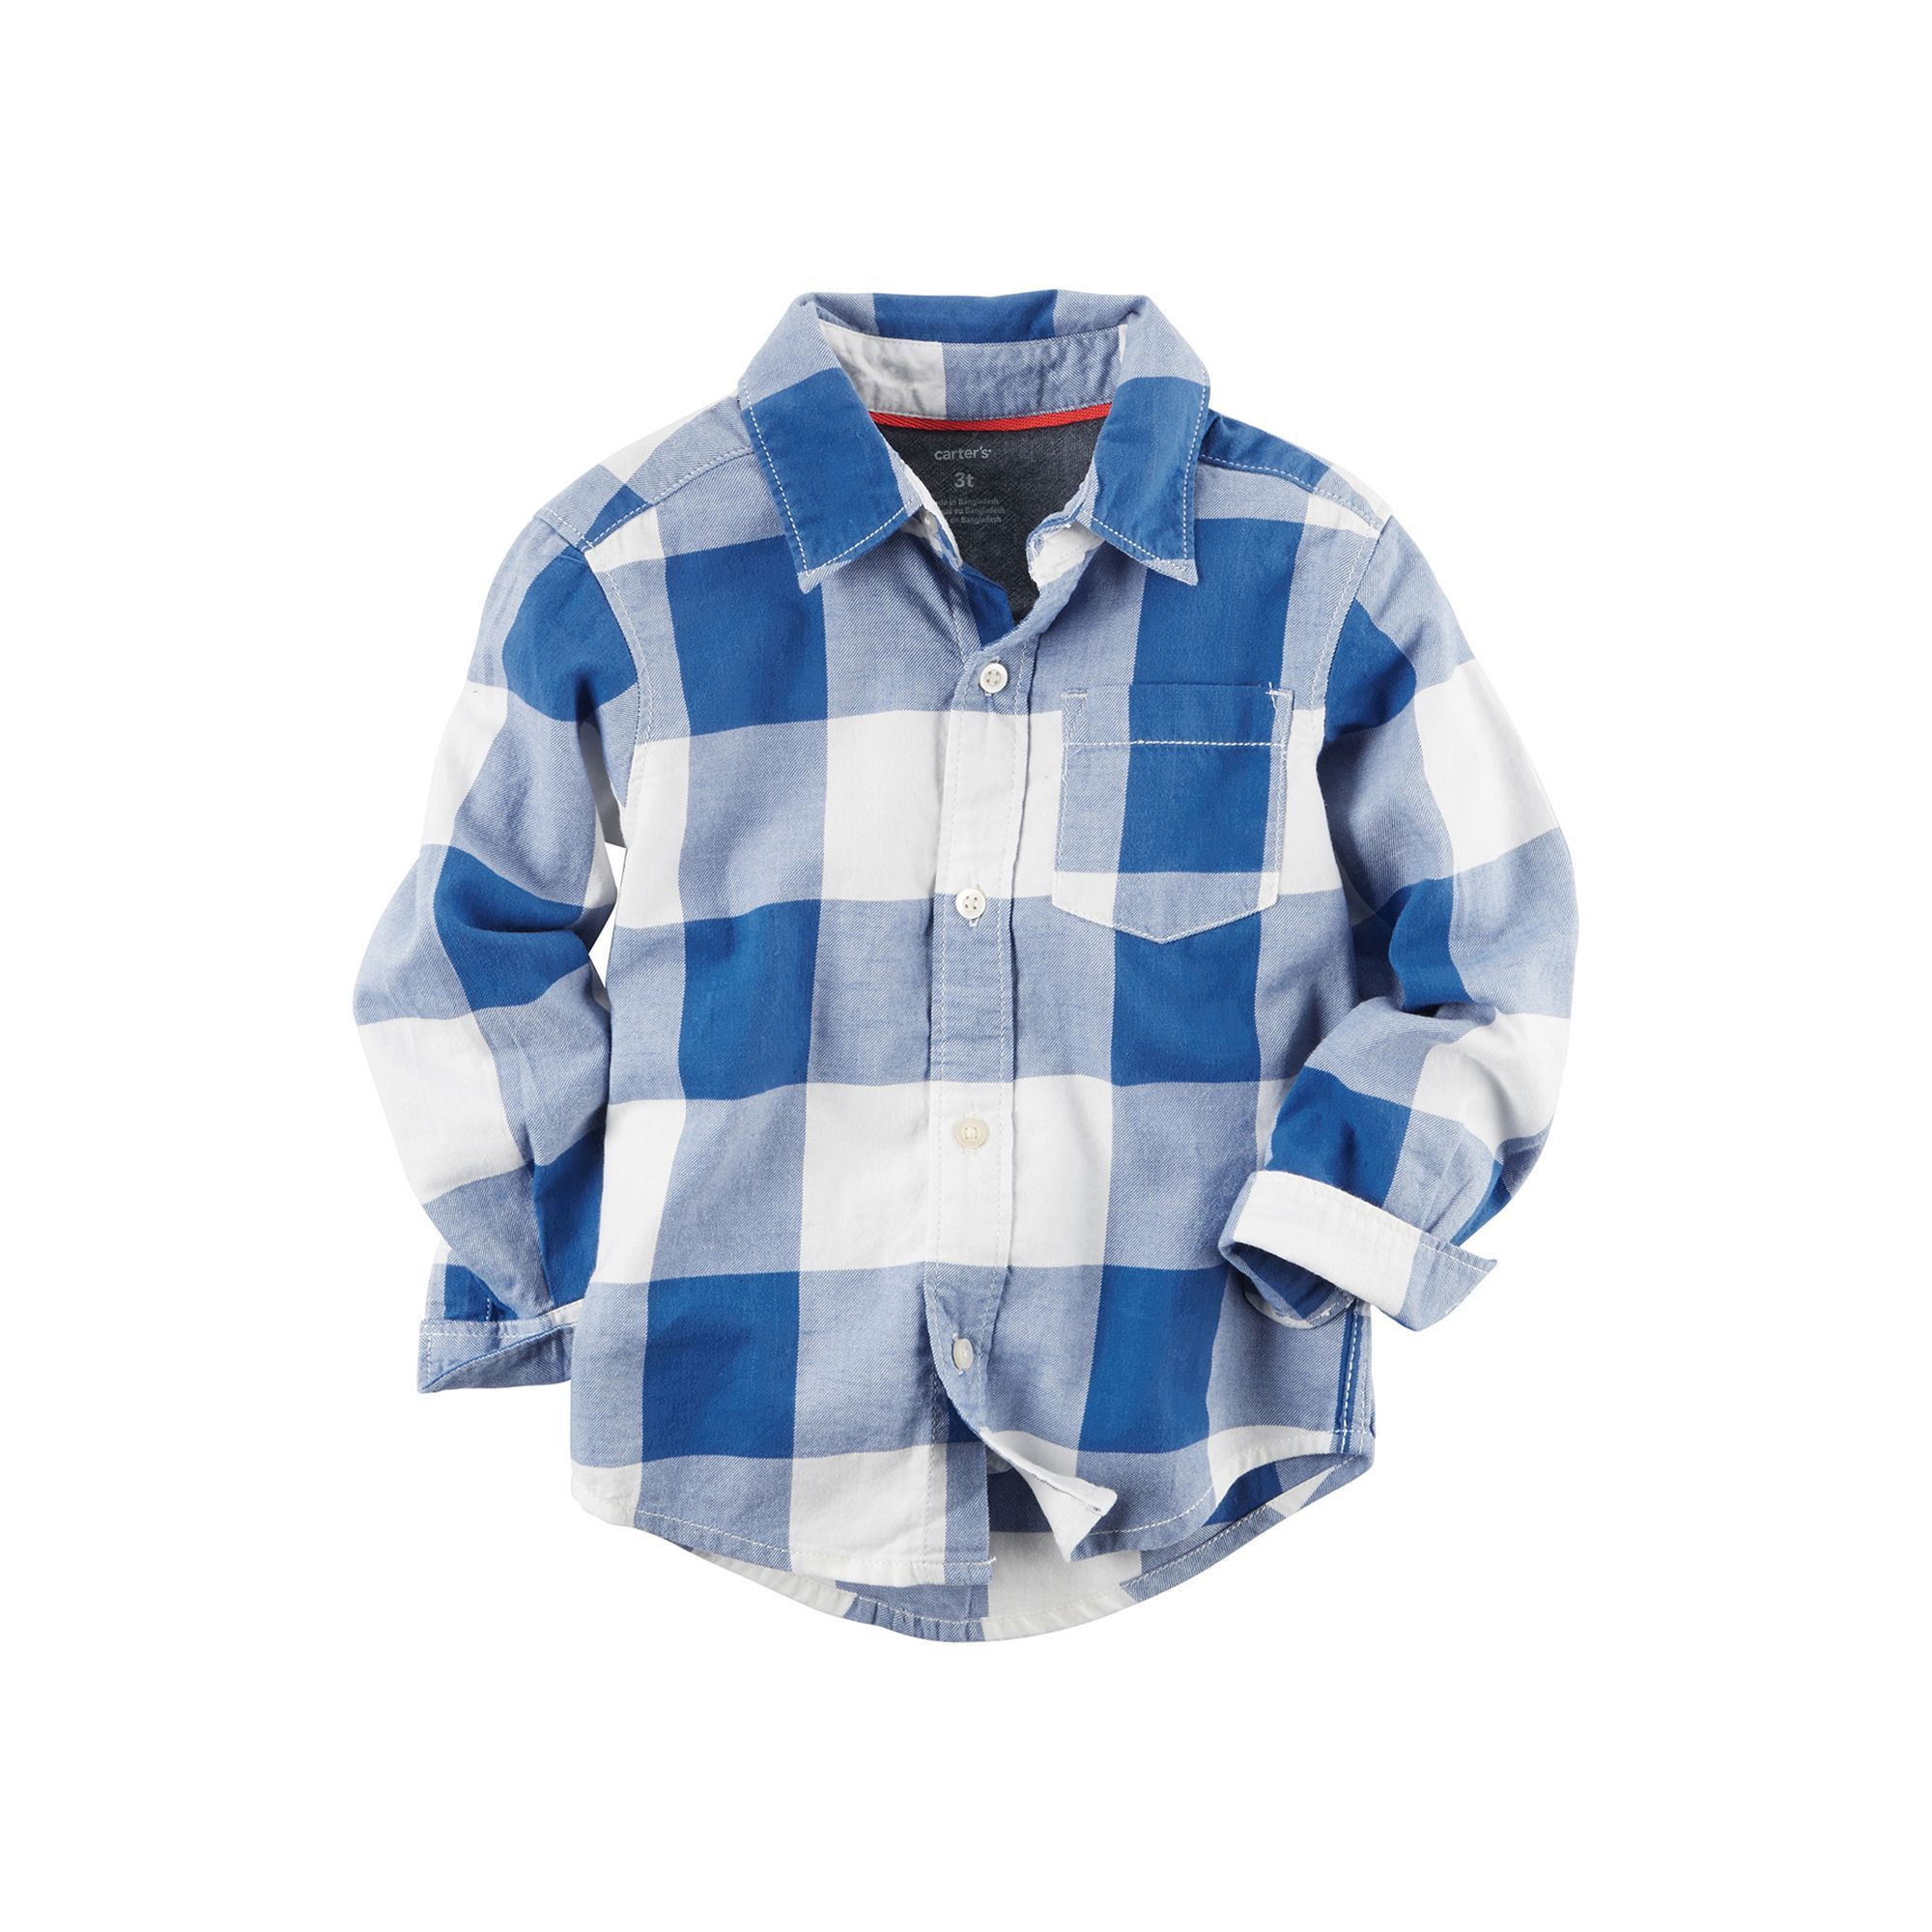 Flannel shirts at kohl's  Toddler Boy Carterus Twill Plaid ButtonDown Shirt Size T Red